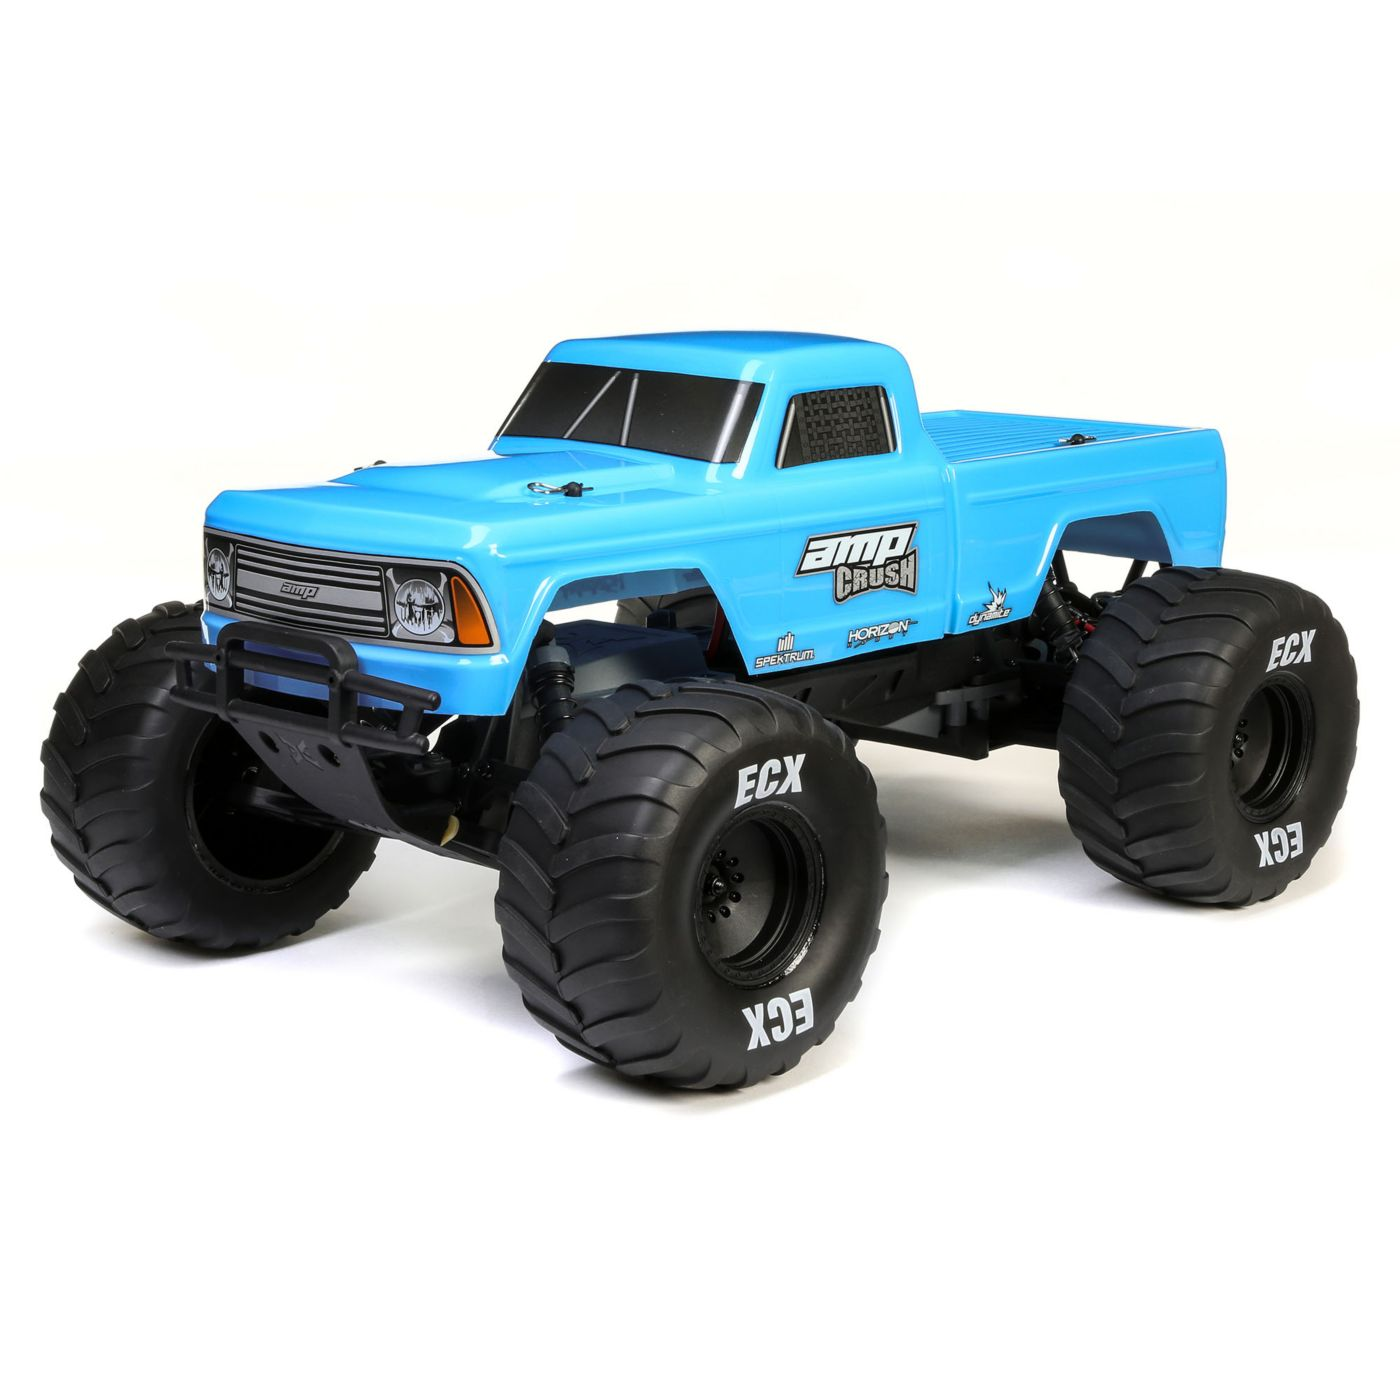 ECX Amp Crush 1/10-scale R/C Monster Truck